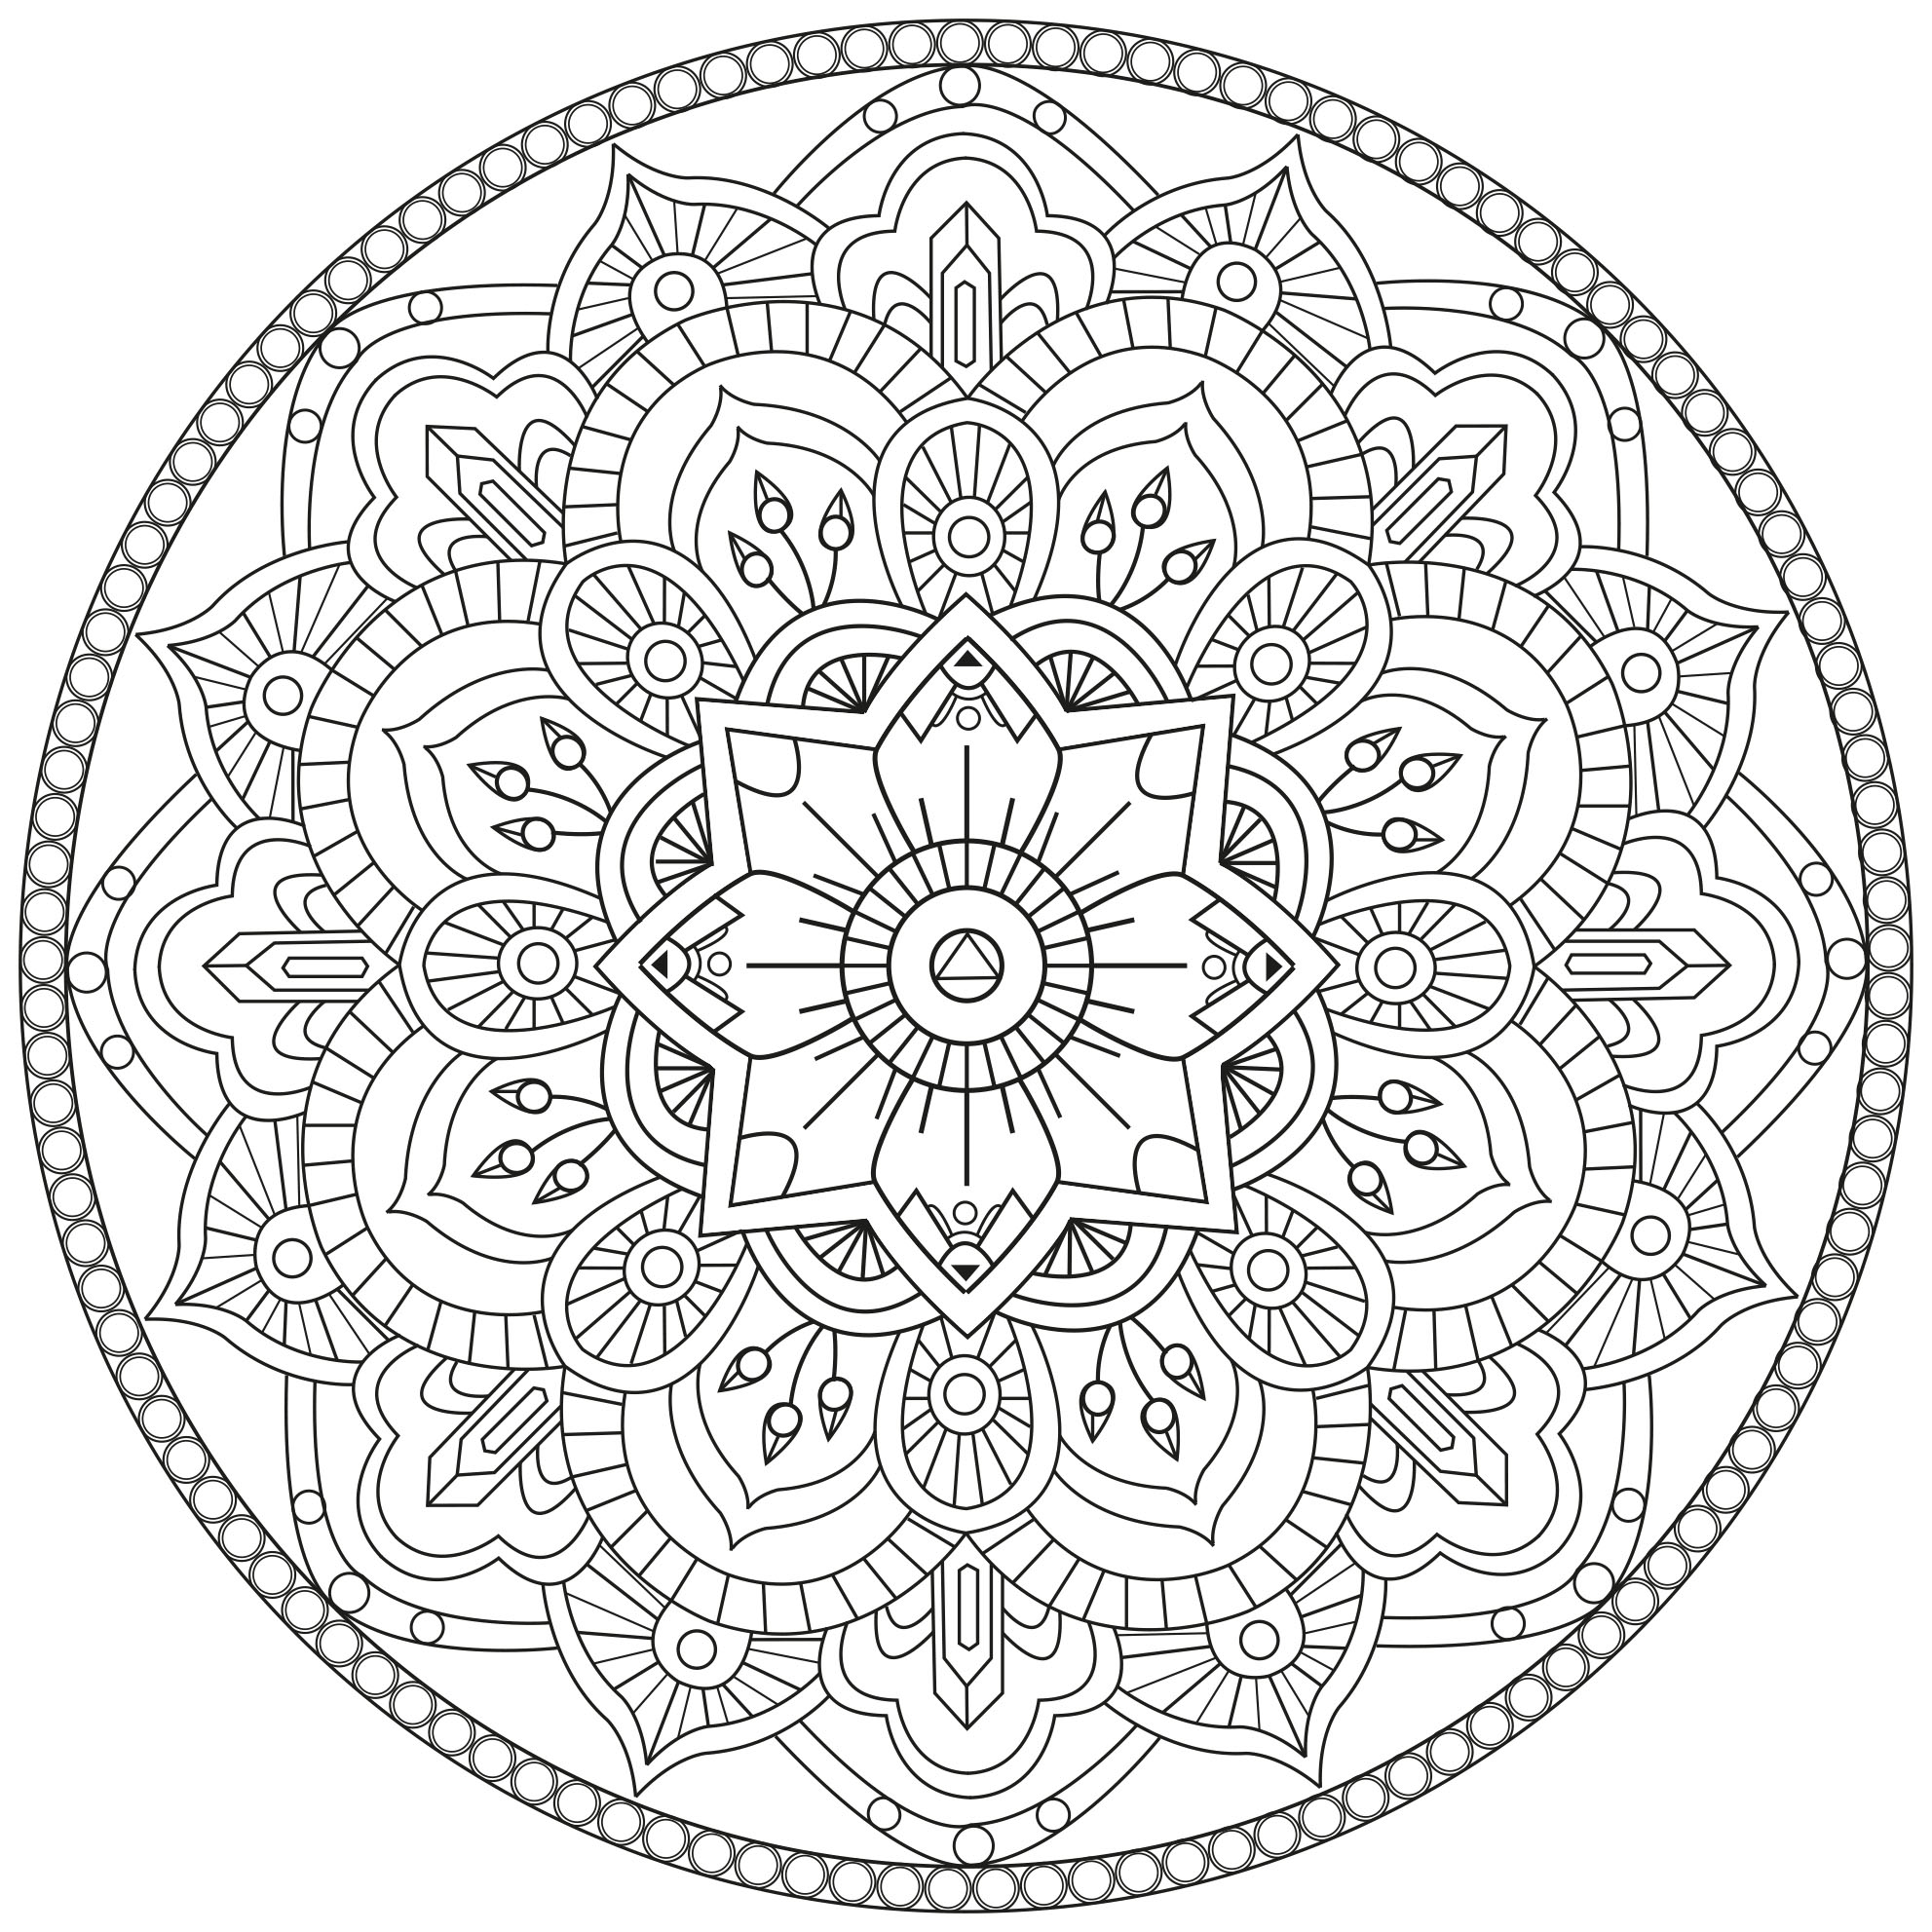 Hard mandala coloring pages for adults - Mandala To Download Summer Free To Print